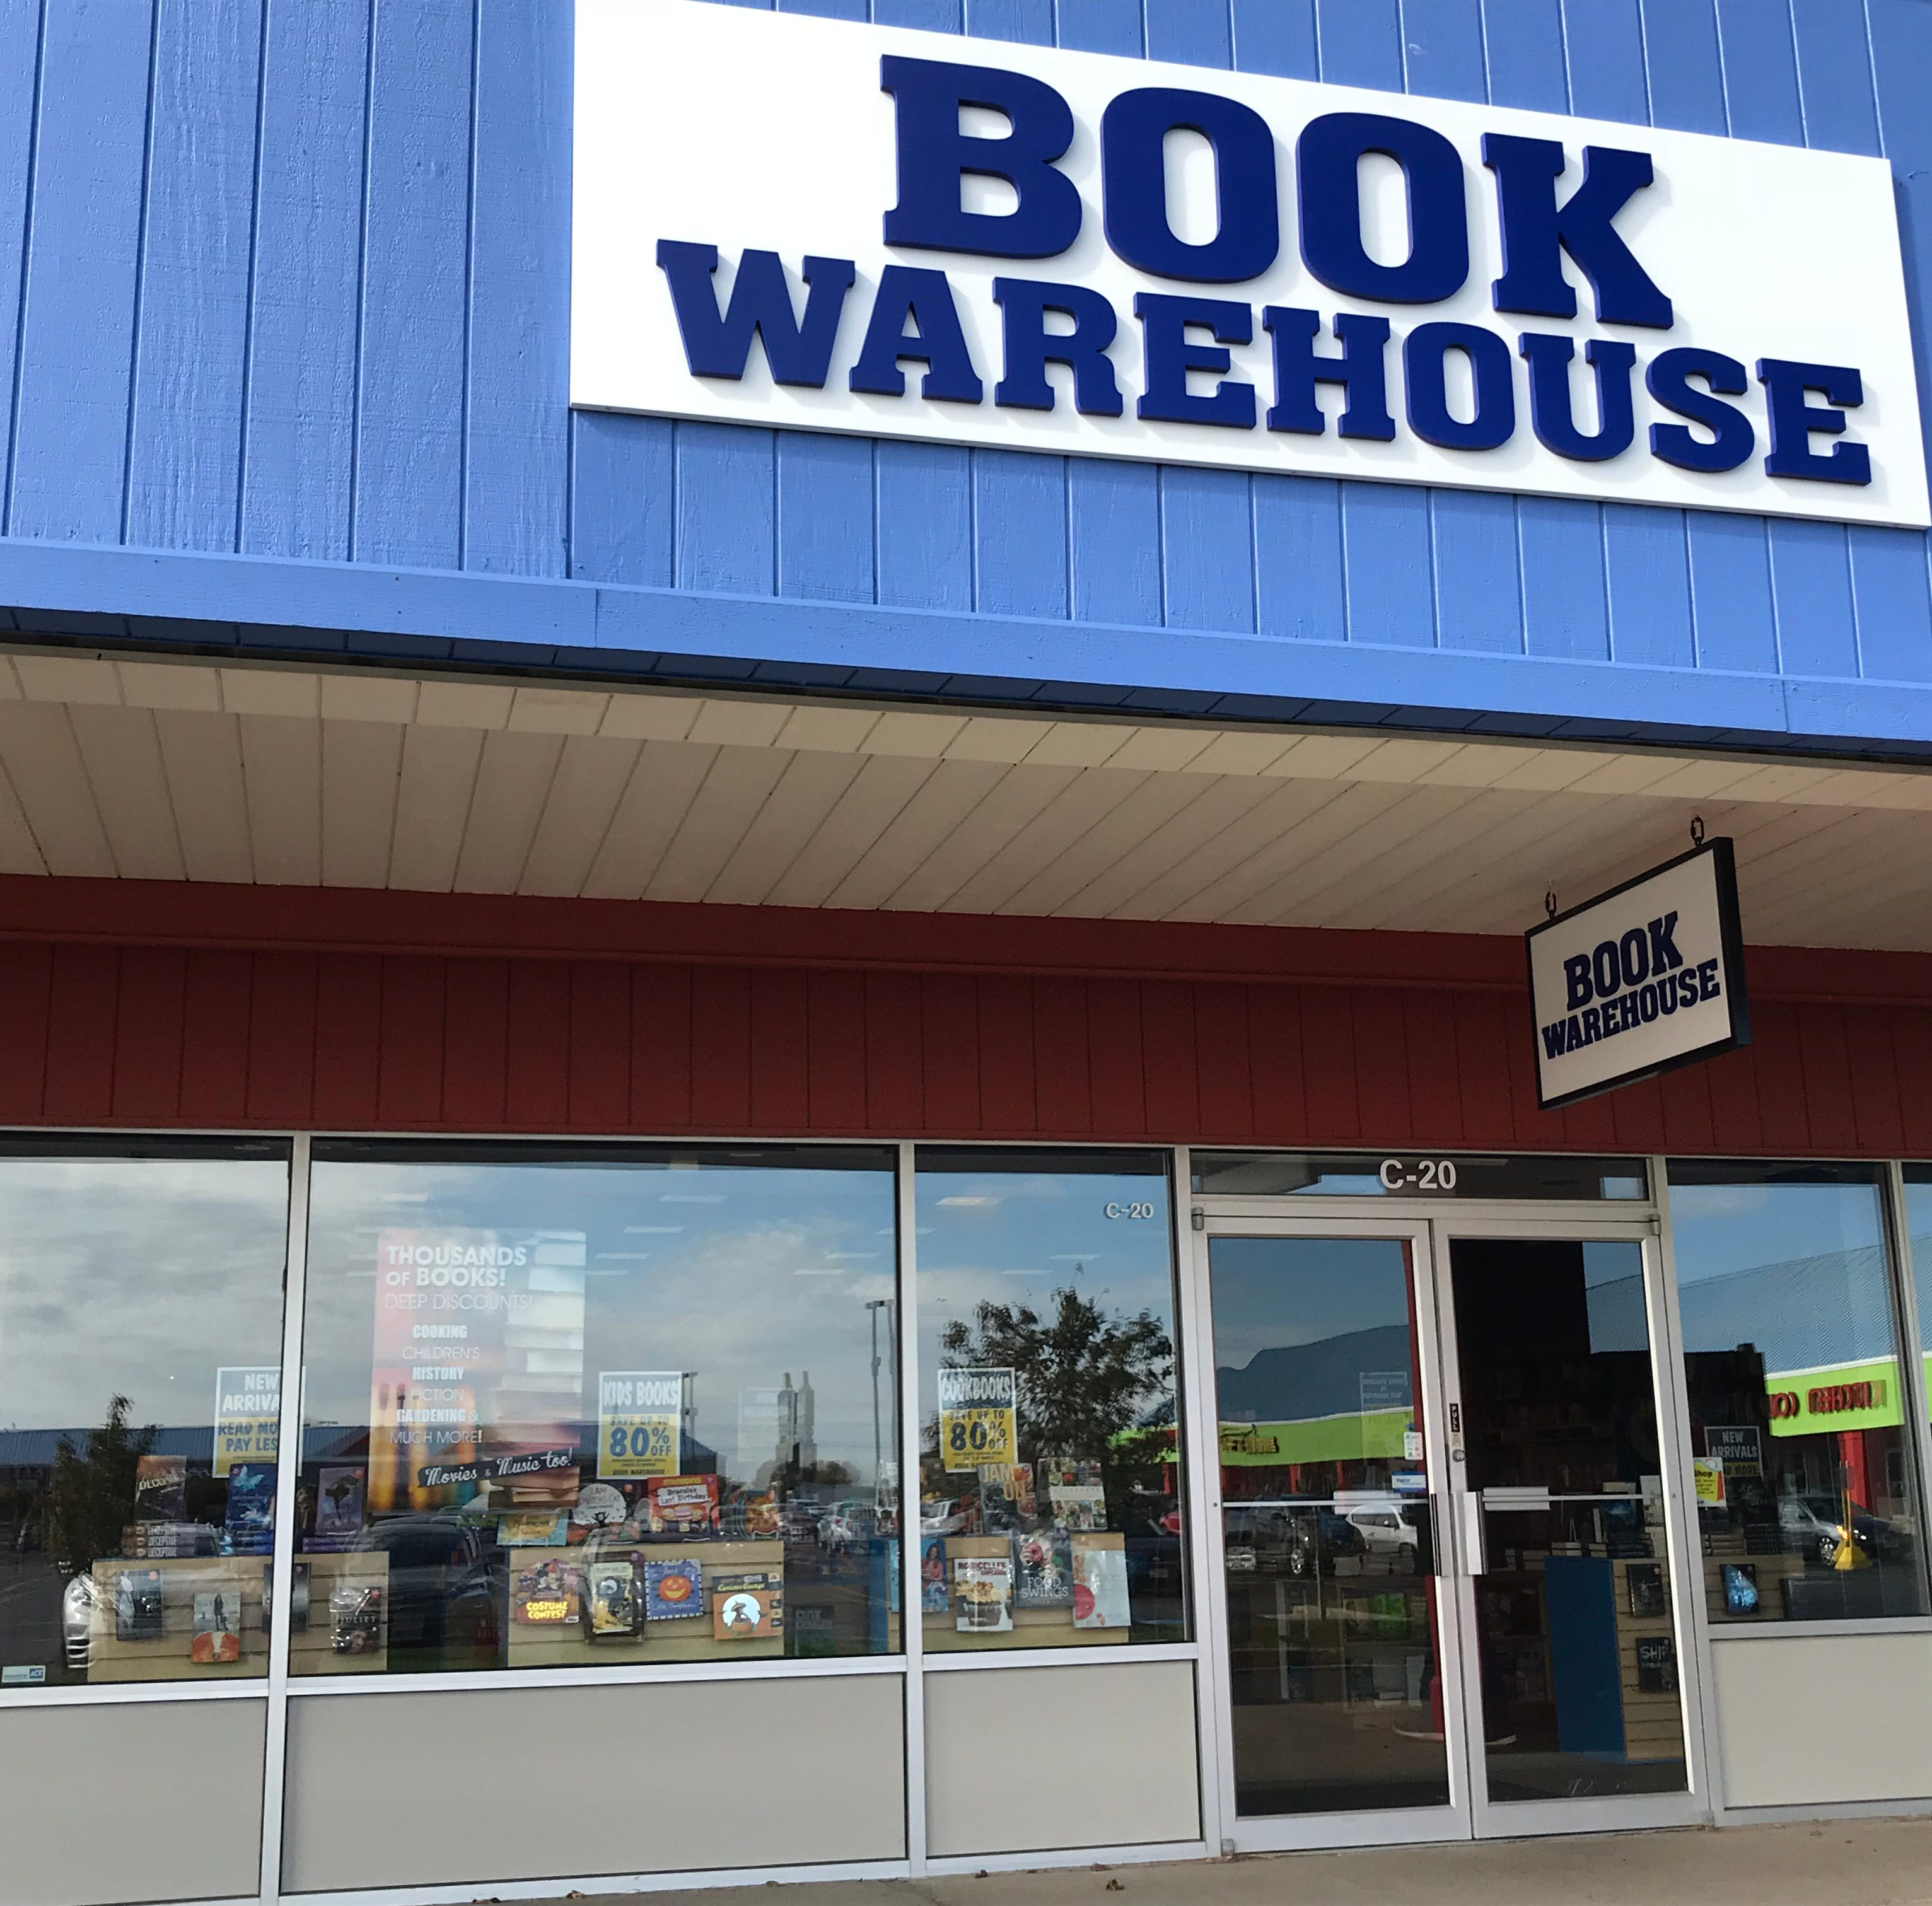 Streetwise: Book Warehouse, Oshkosh's newest and only bookstore, opened Friday